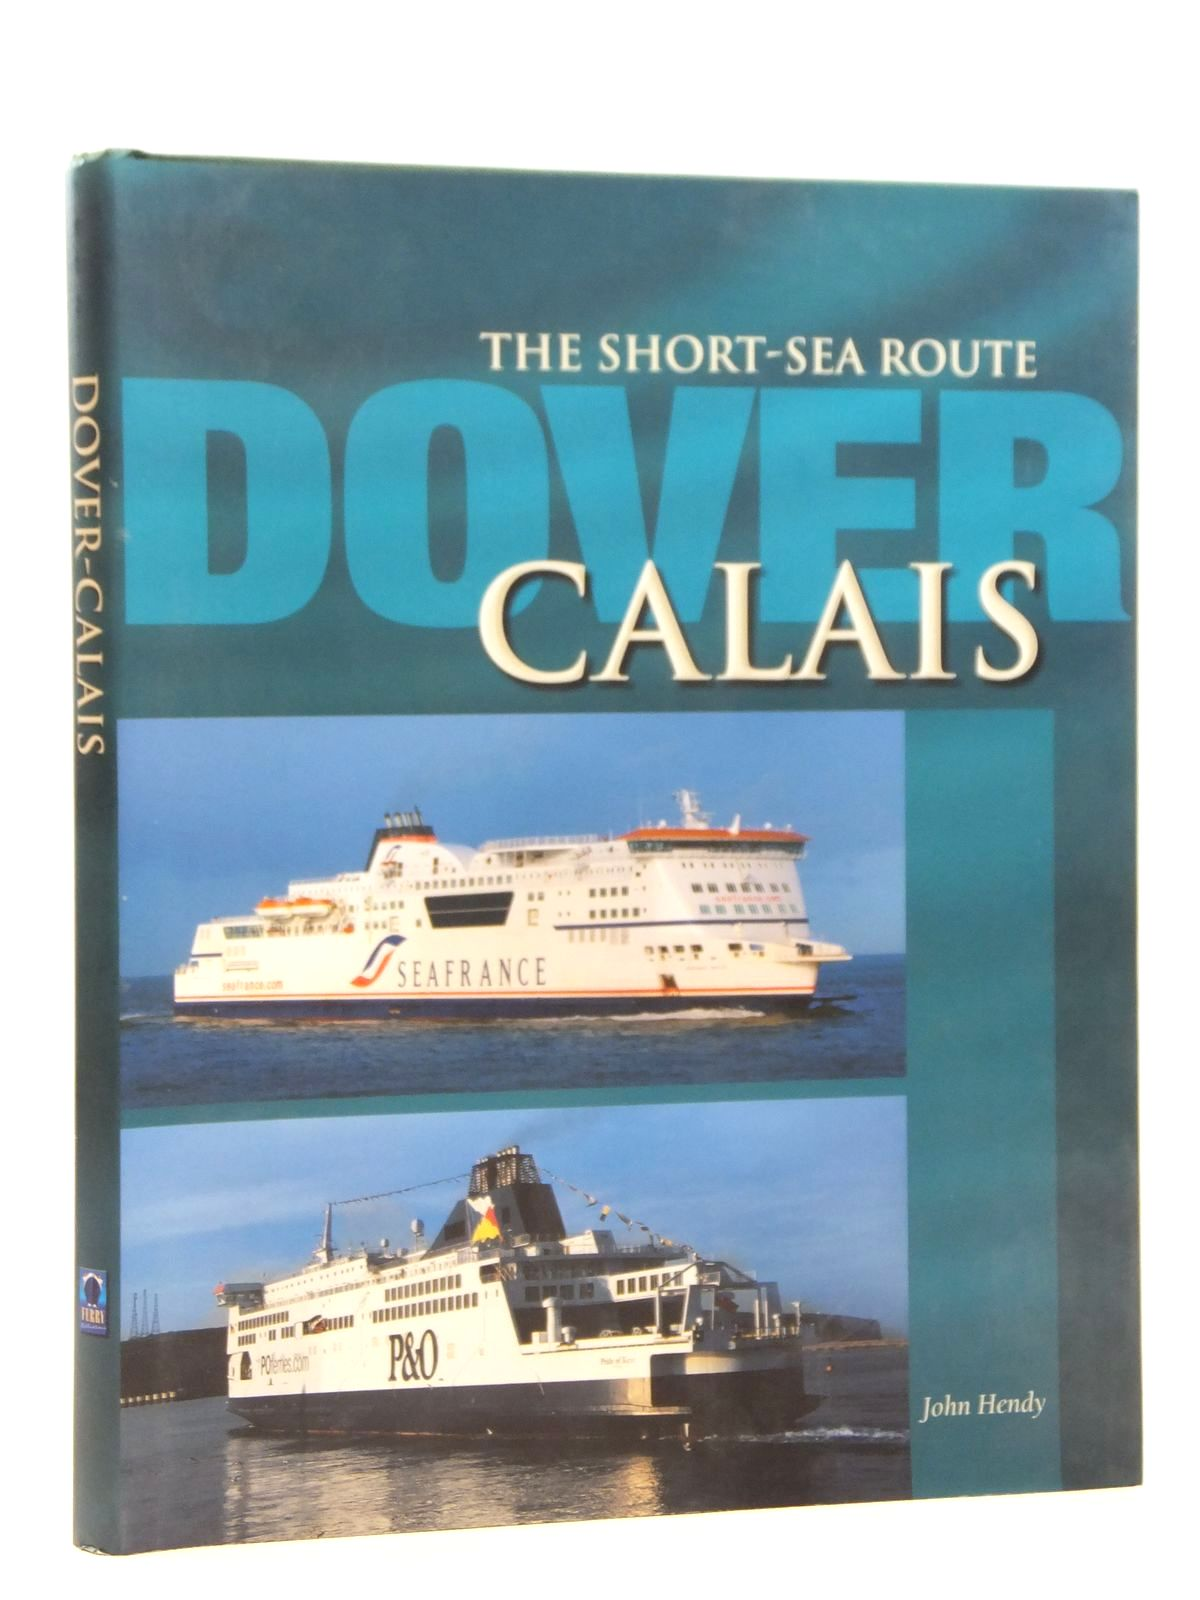 Photo of THE SHORT-SEA ROUTE DOVER - CALAIS written by Hendy, John published by Ferry Publications (STOCK CODE: 2121600)  for sale by Stella & Rose's Books